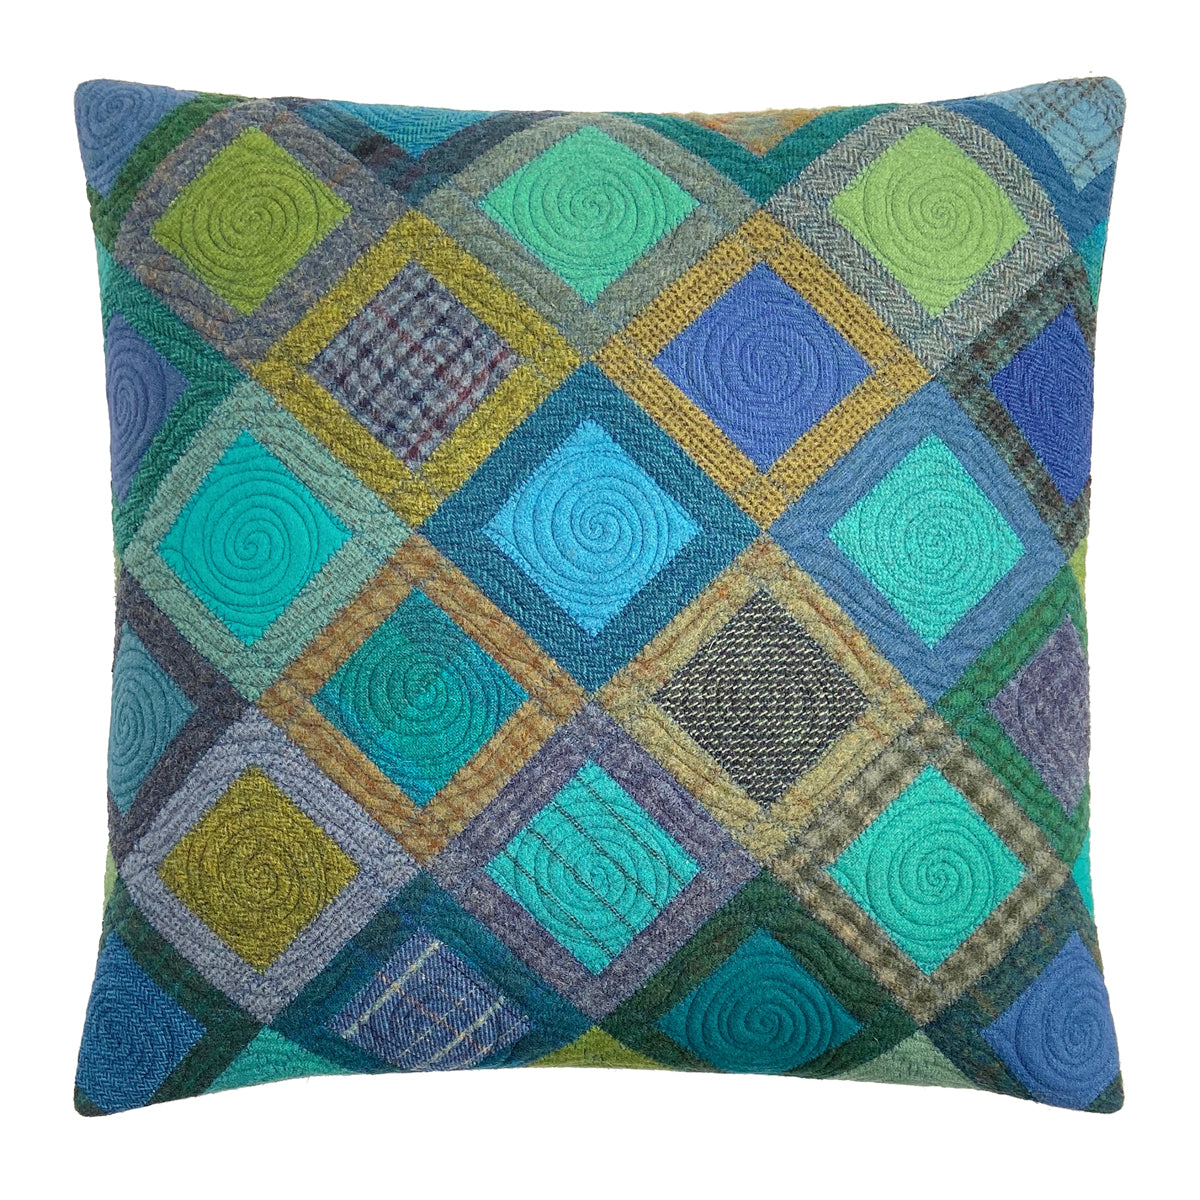 NE 41st Avenue Cushion • 20x20 B